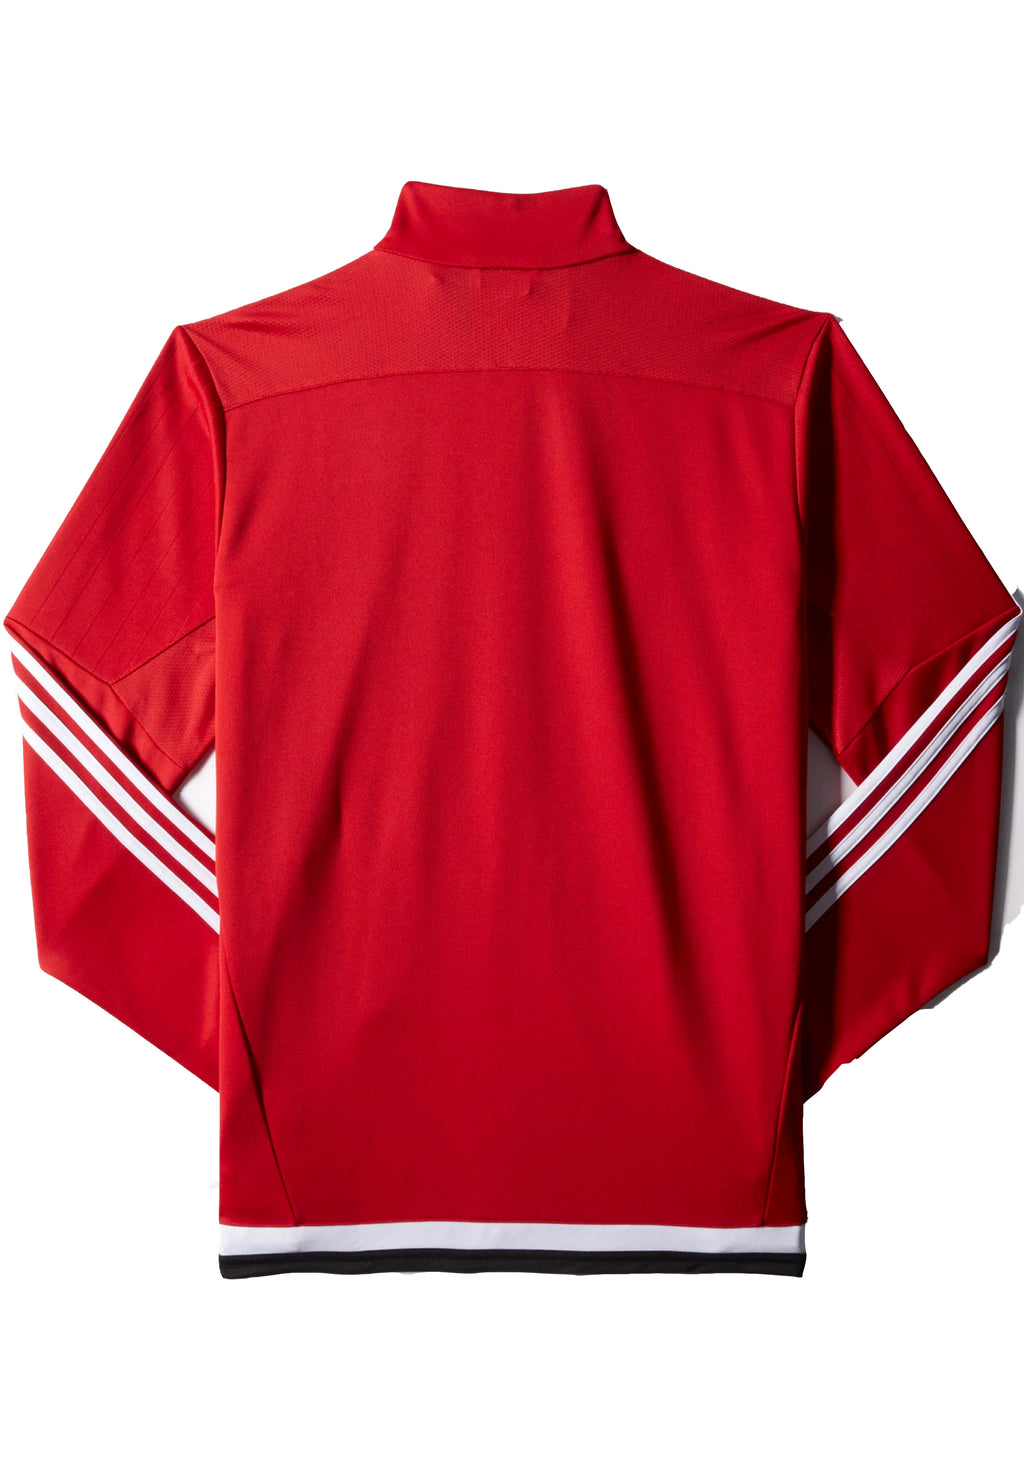 ADIDAS MENS TIRO 15 TRAINING JACKET <BR> M64060